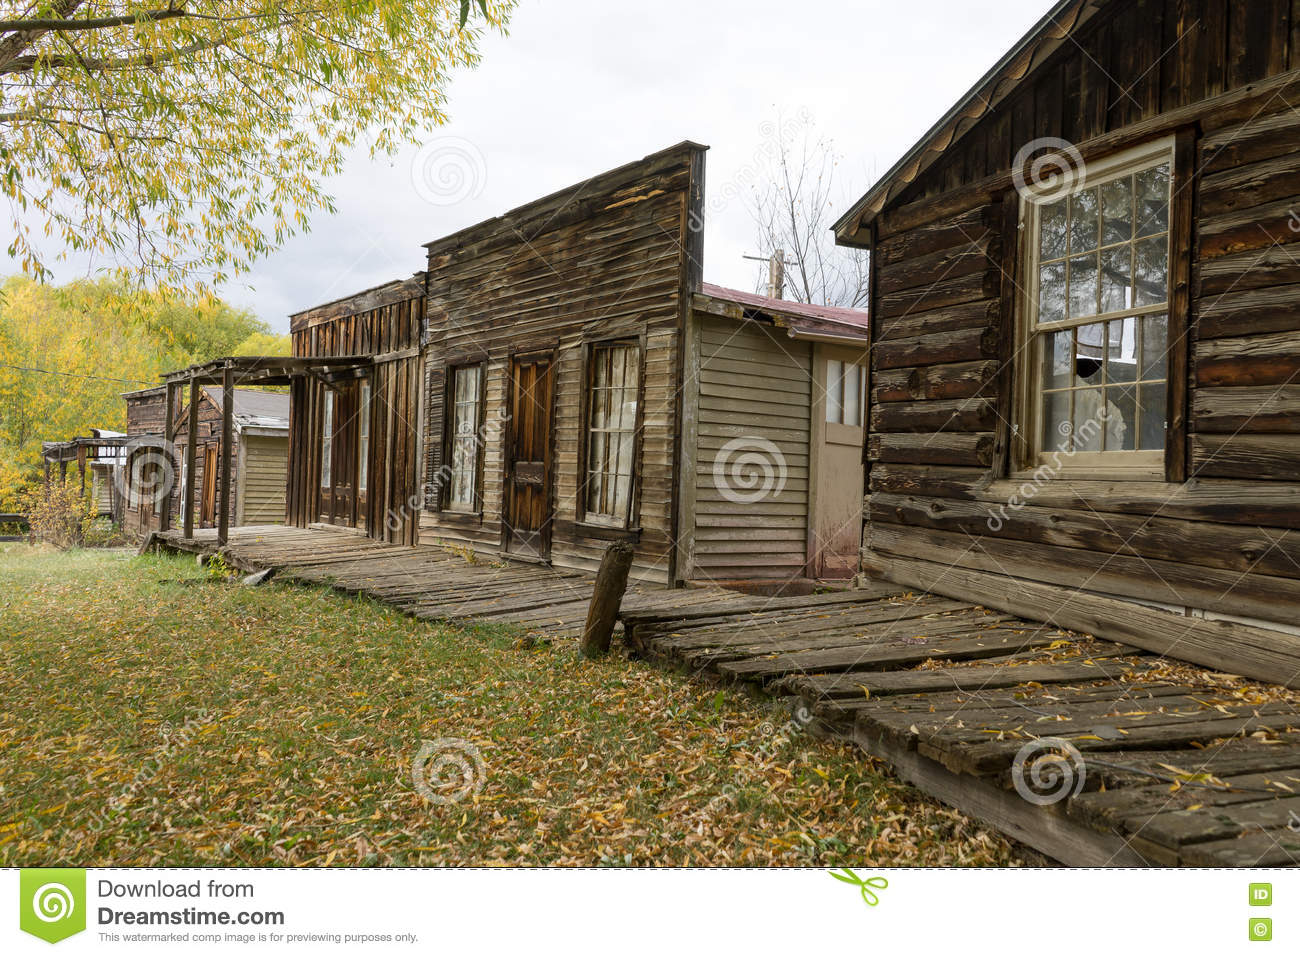 Vintage Abandoned Buildings In Nevada City Montana Usa Stock Photo Image Of Town City 71370550